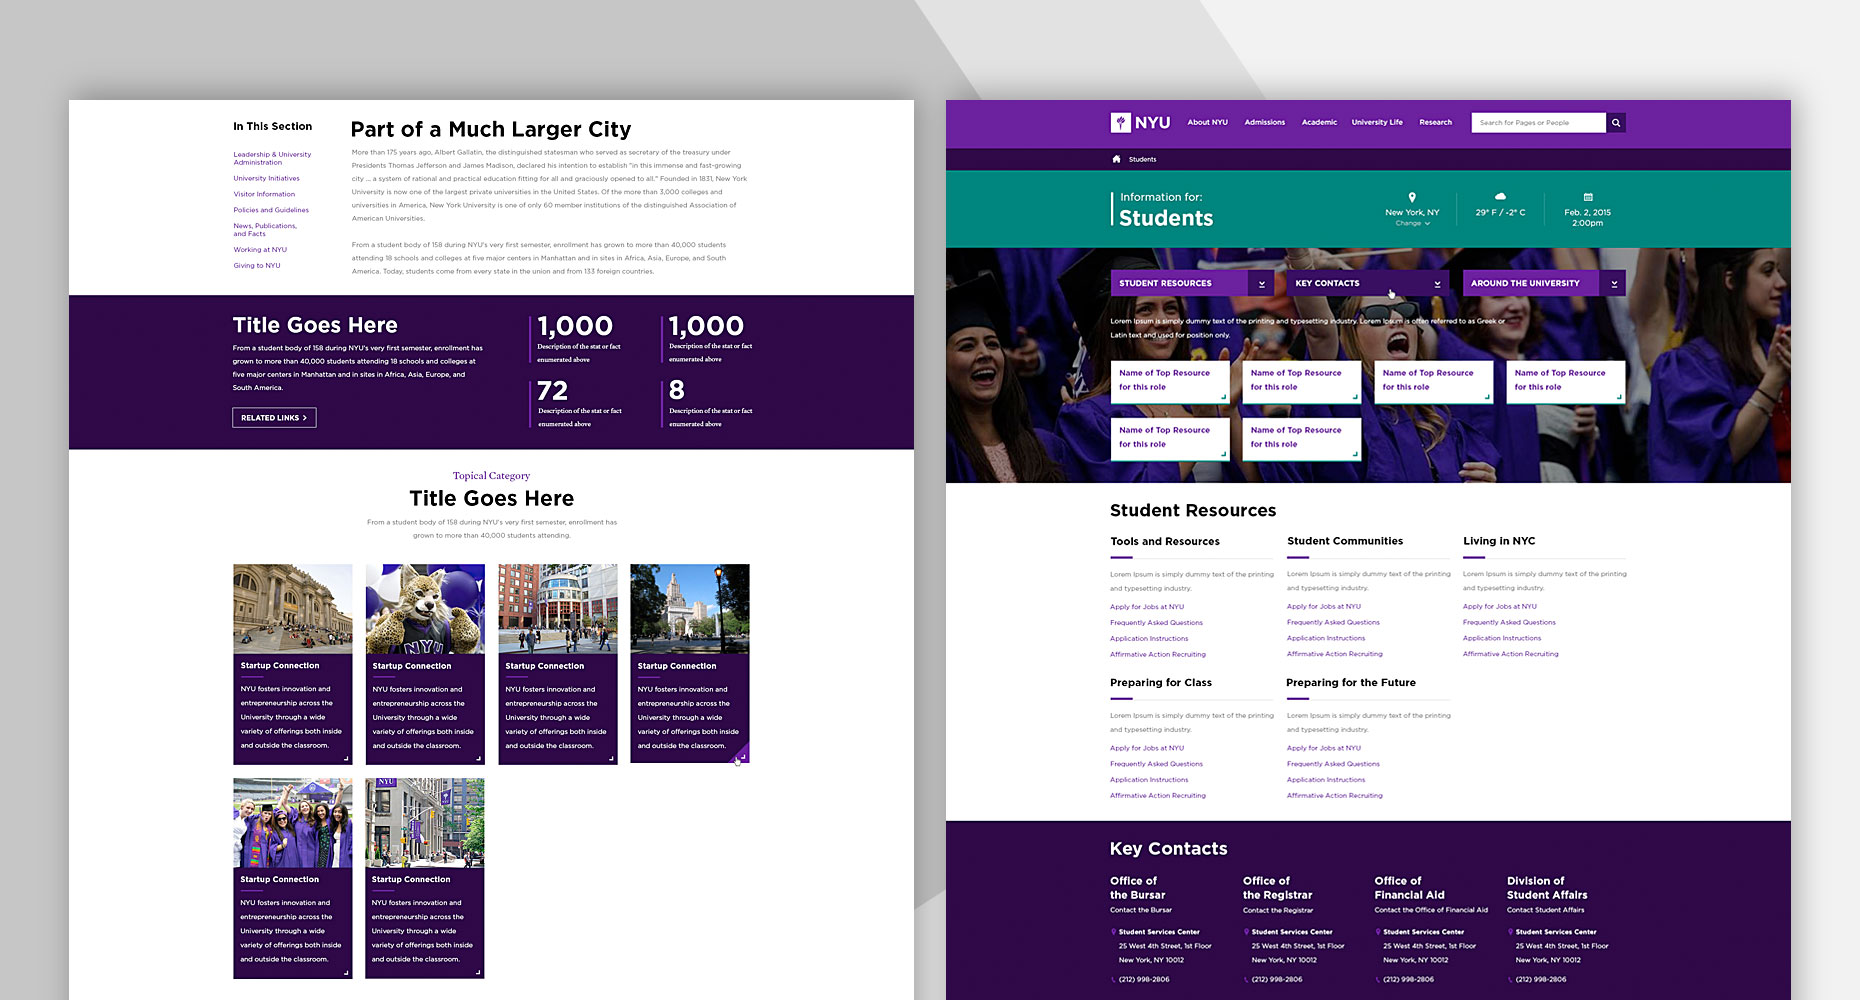 New NYU website design